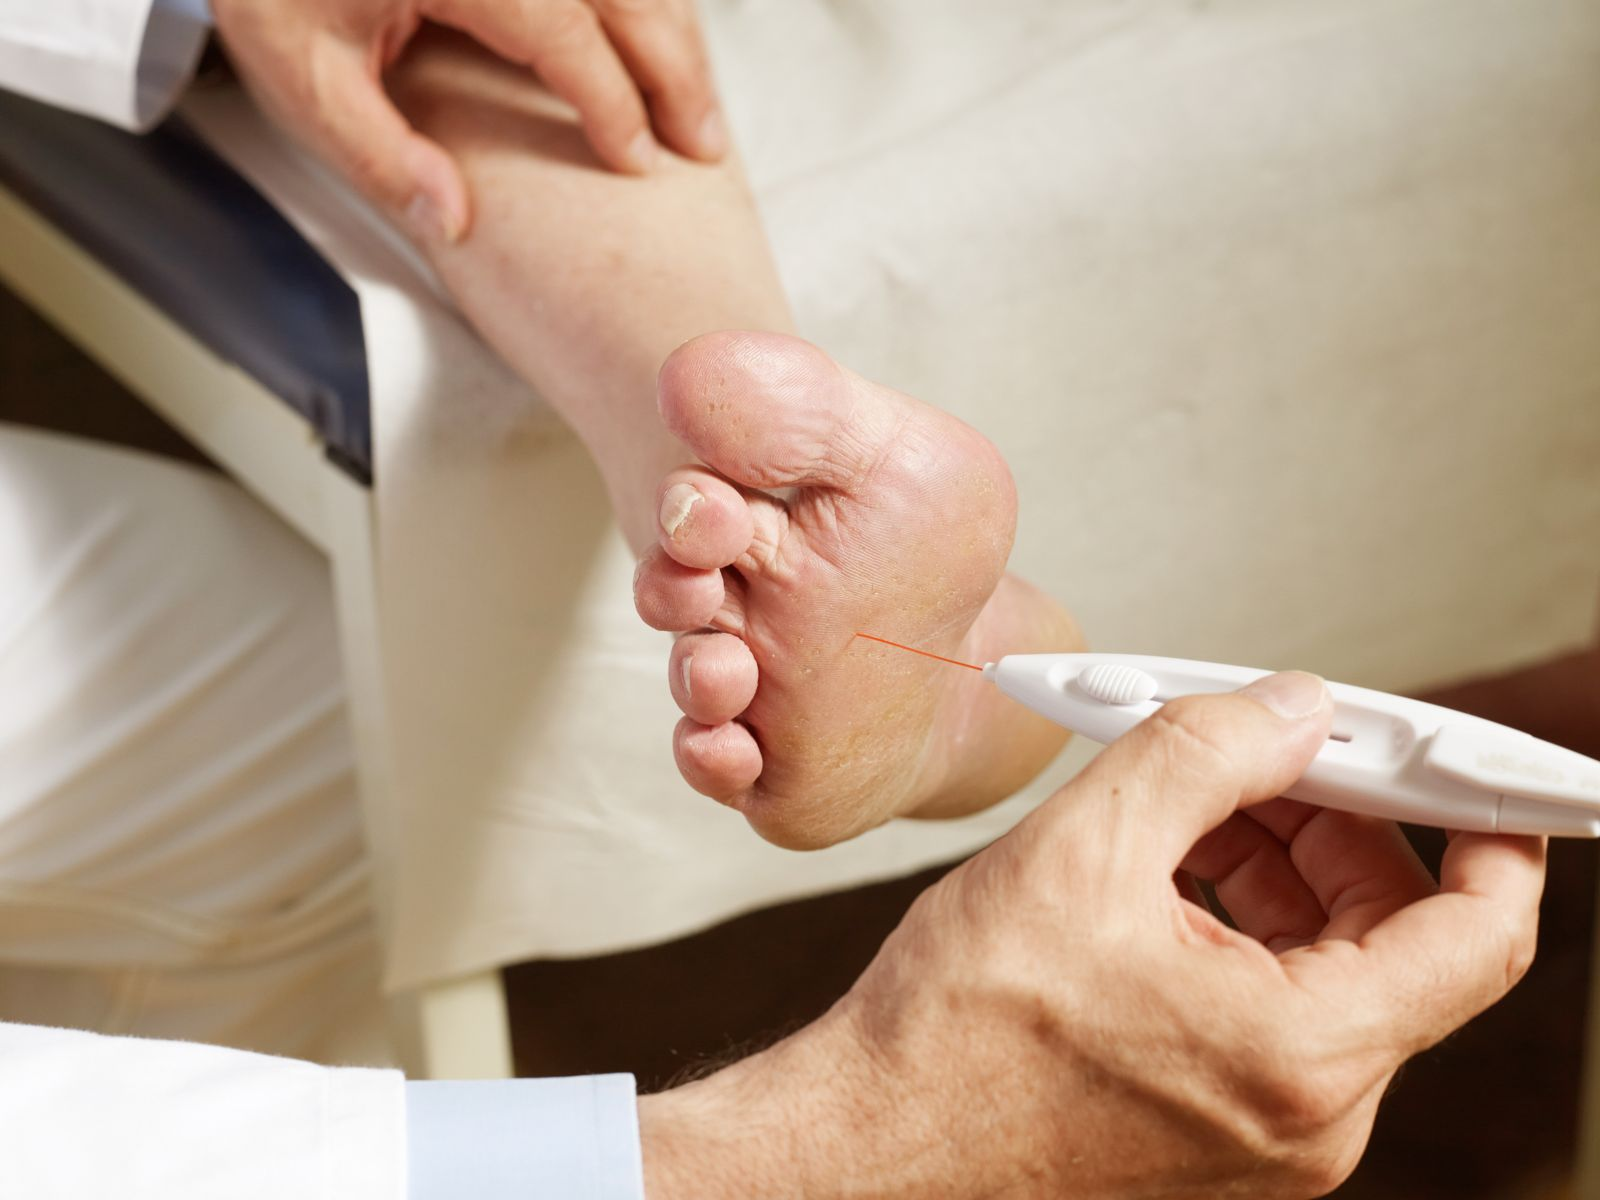 Doctor examining a diabetic patient's foot